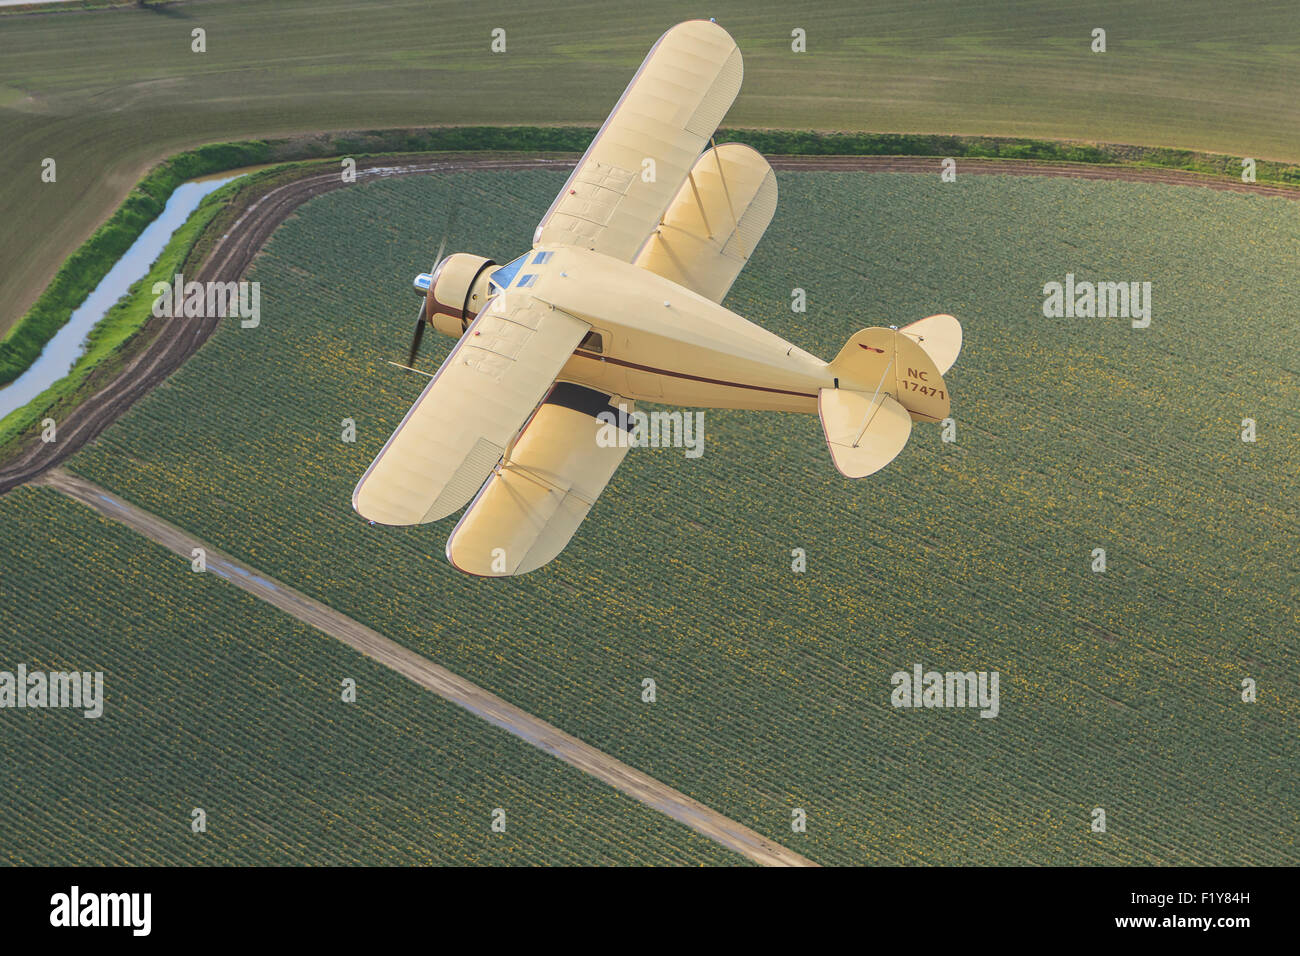 Flying,Aerial View,Biplane - Stock Image